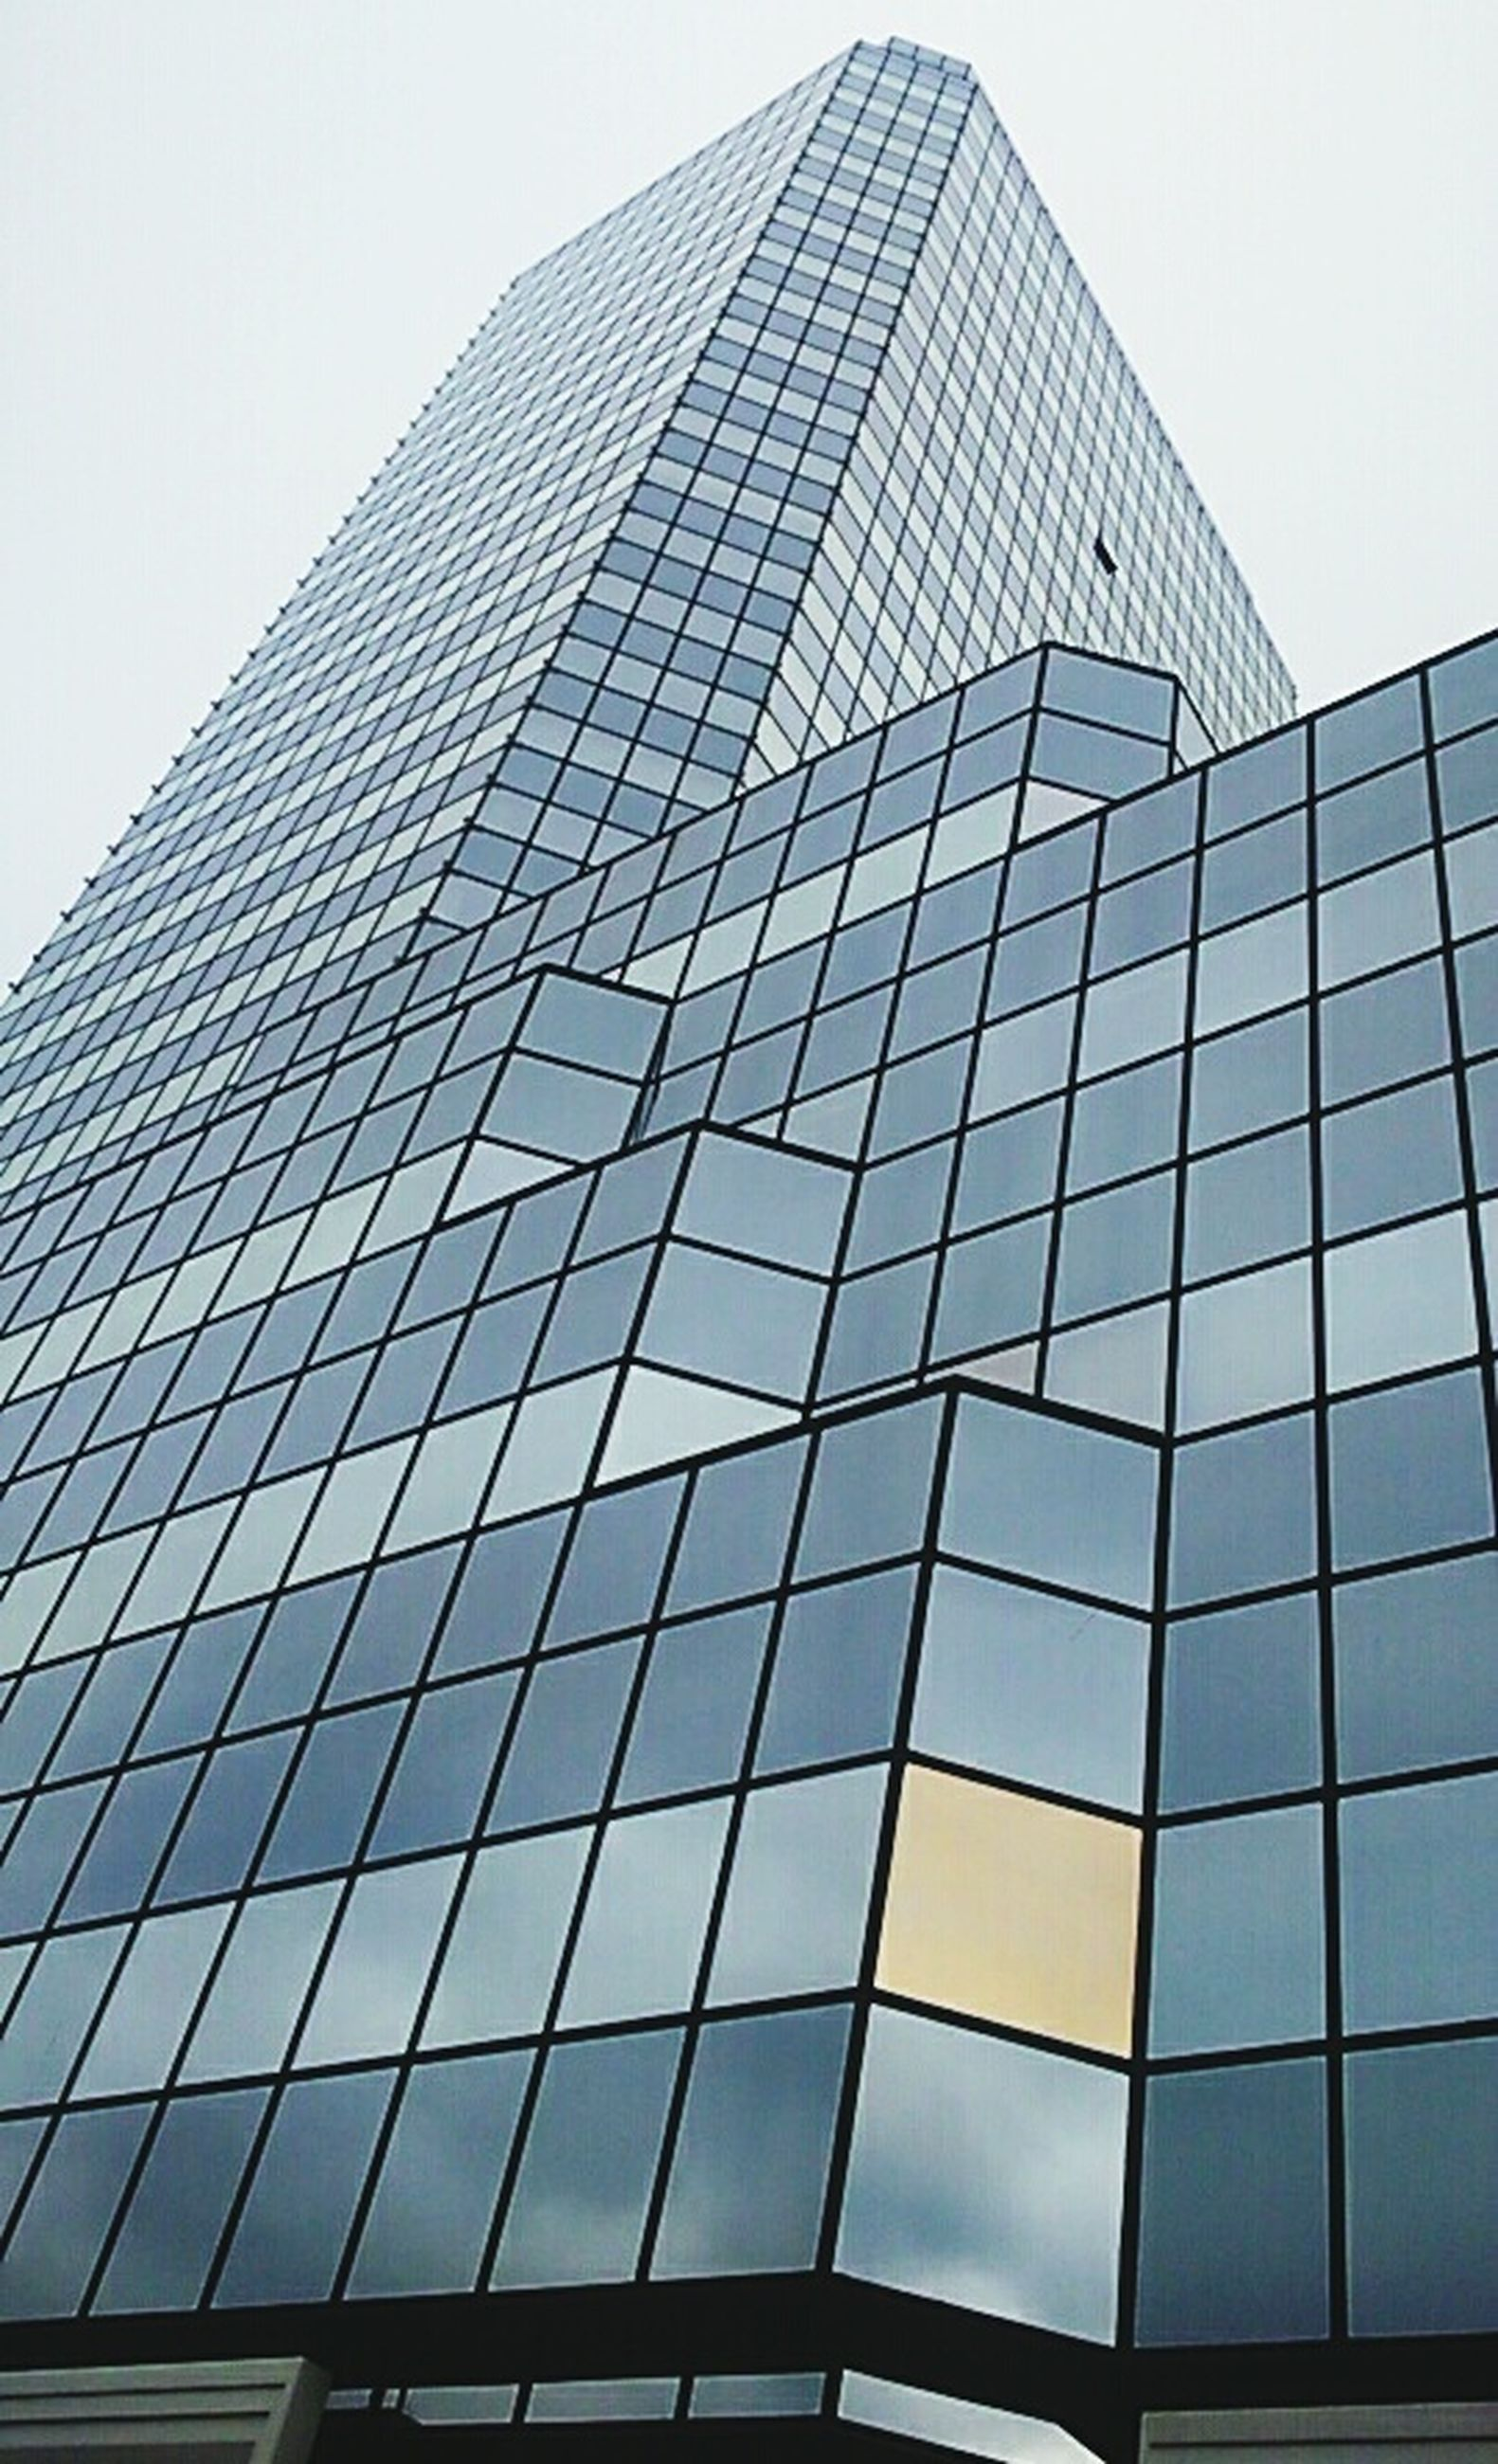 low angle view, building exterior, architecture, built structure, modern, office building, skyscraper, clear sky, tall - high, city, glass - material, building, tower, sky, reflection, day, window, pattern, outdoors, no people